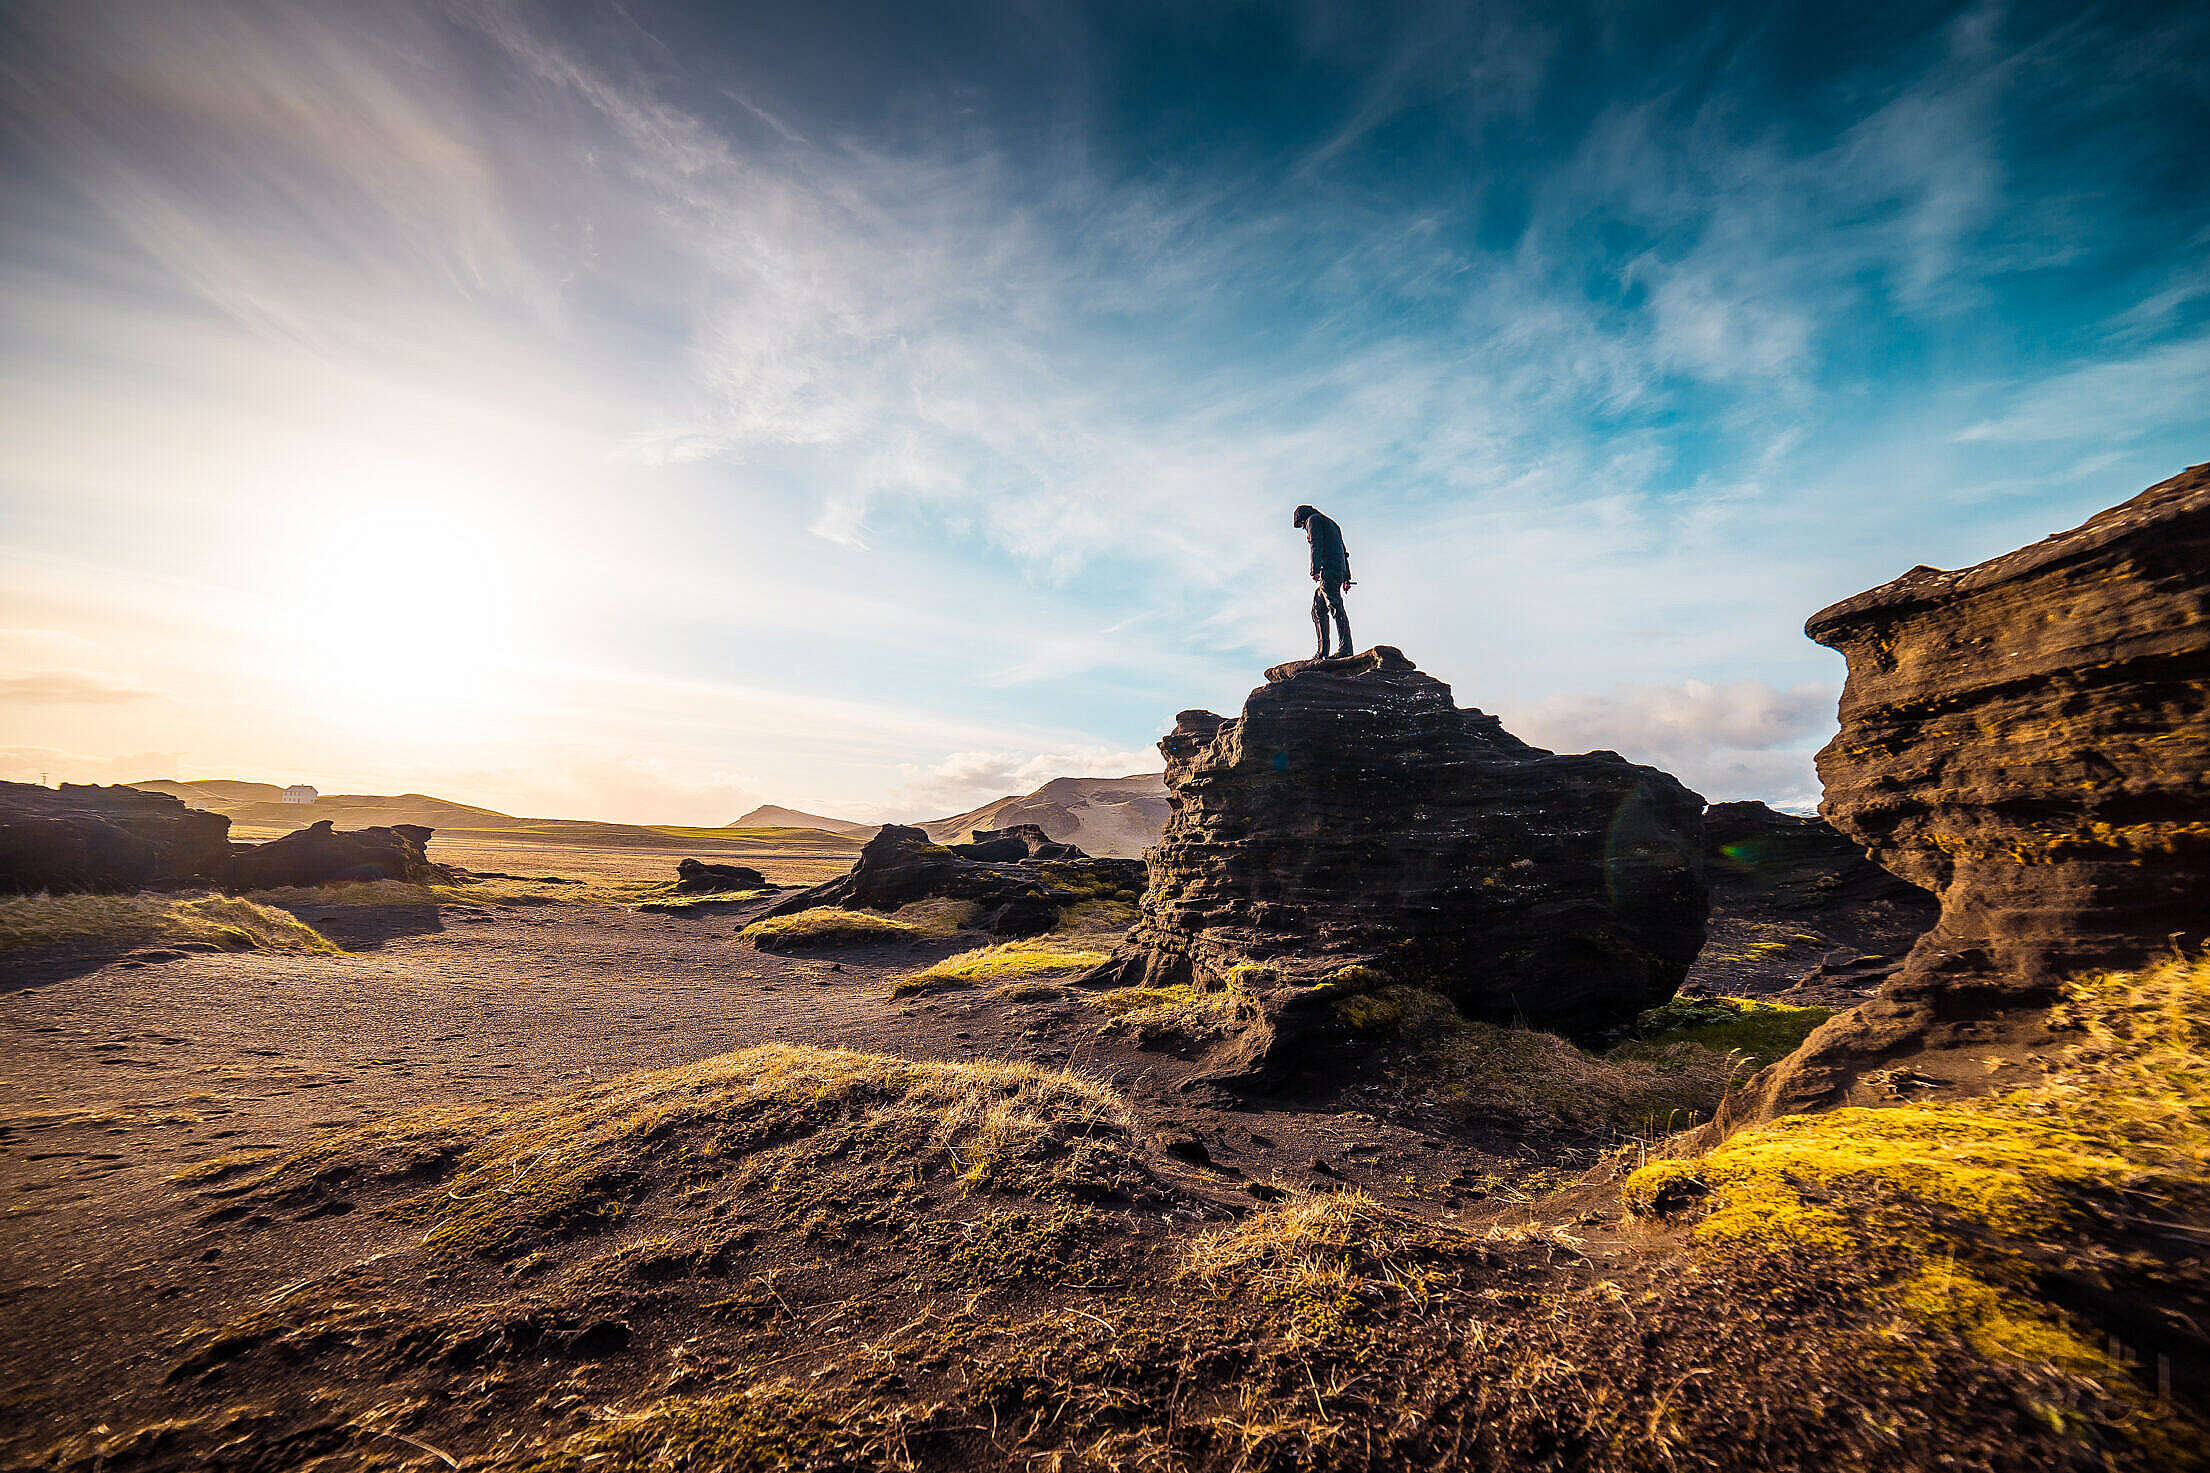 Man Standing on The Rock Free Stock Photo